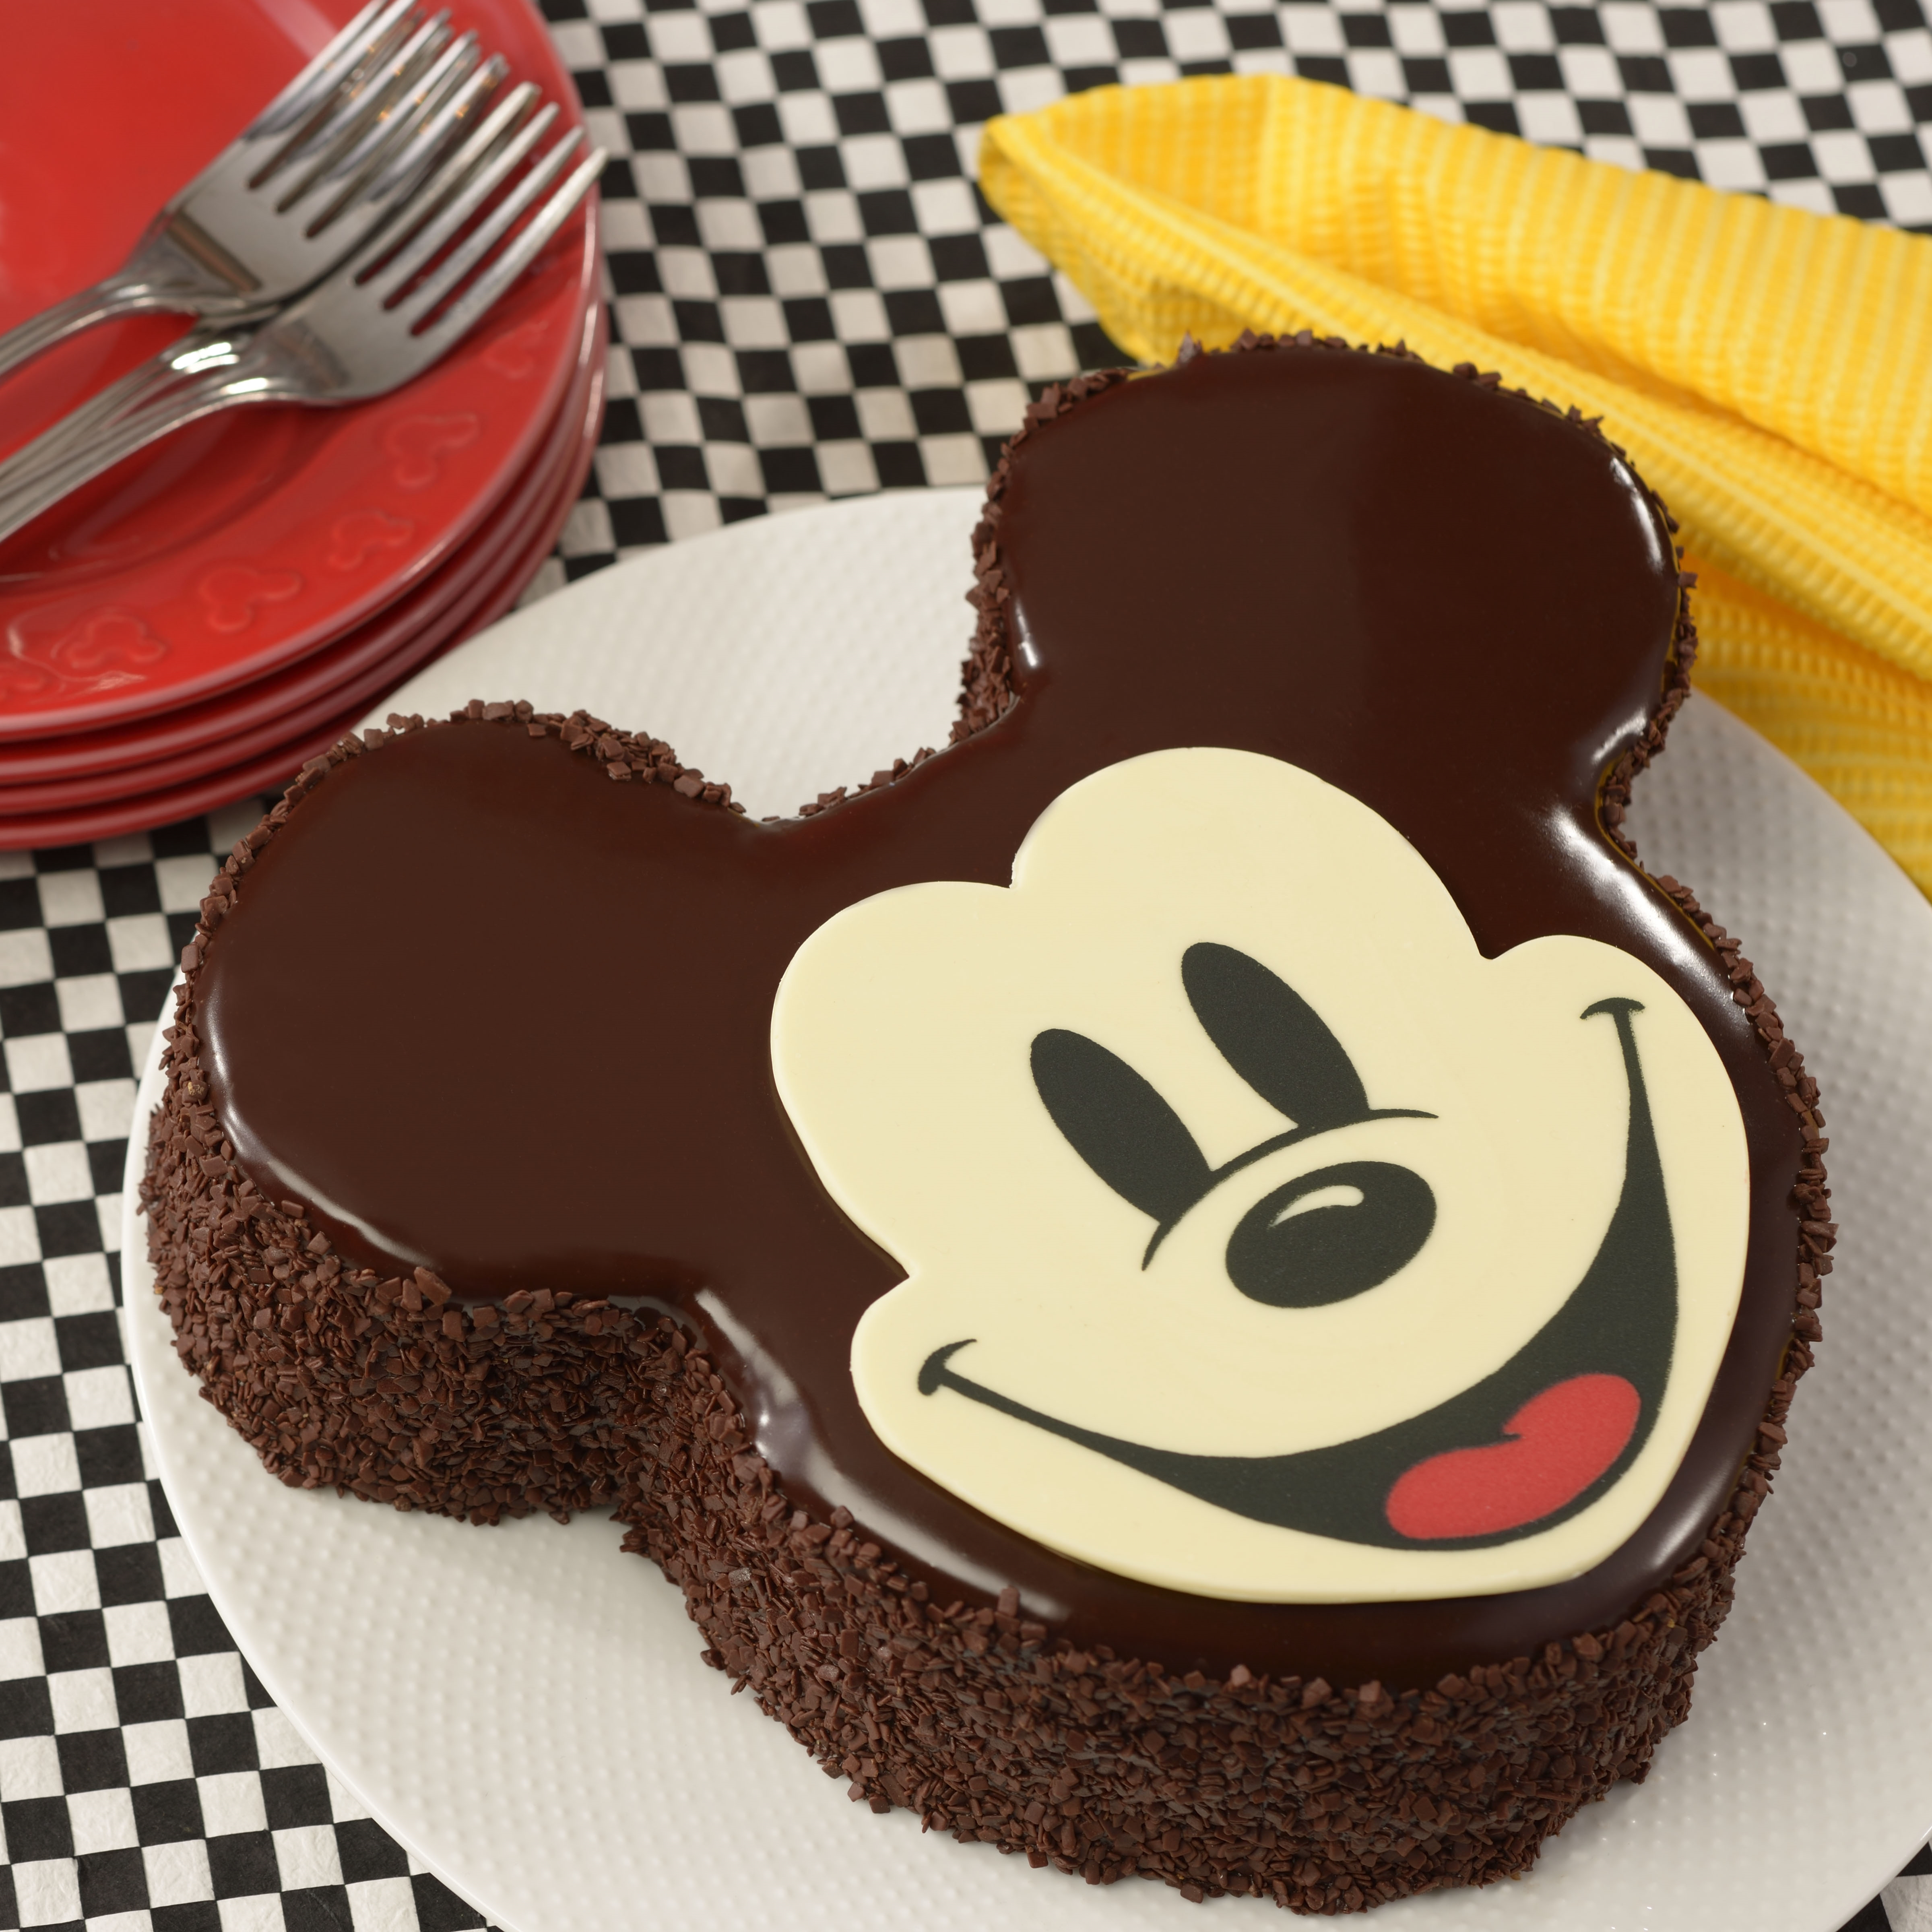 Mickey Mouse Cream Cake Images : Mickey Mouse Cake